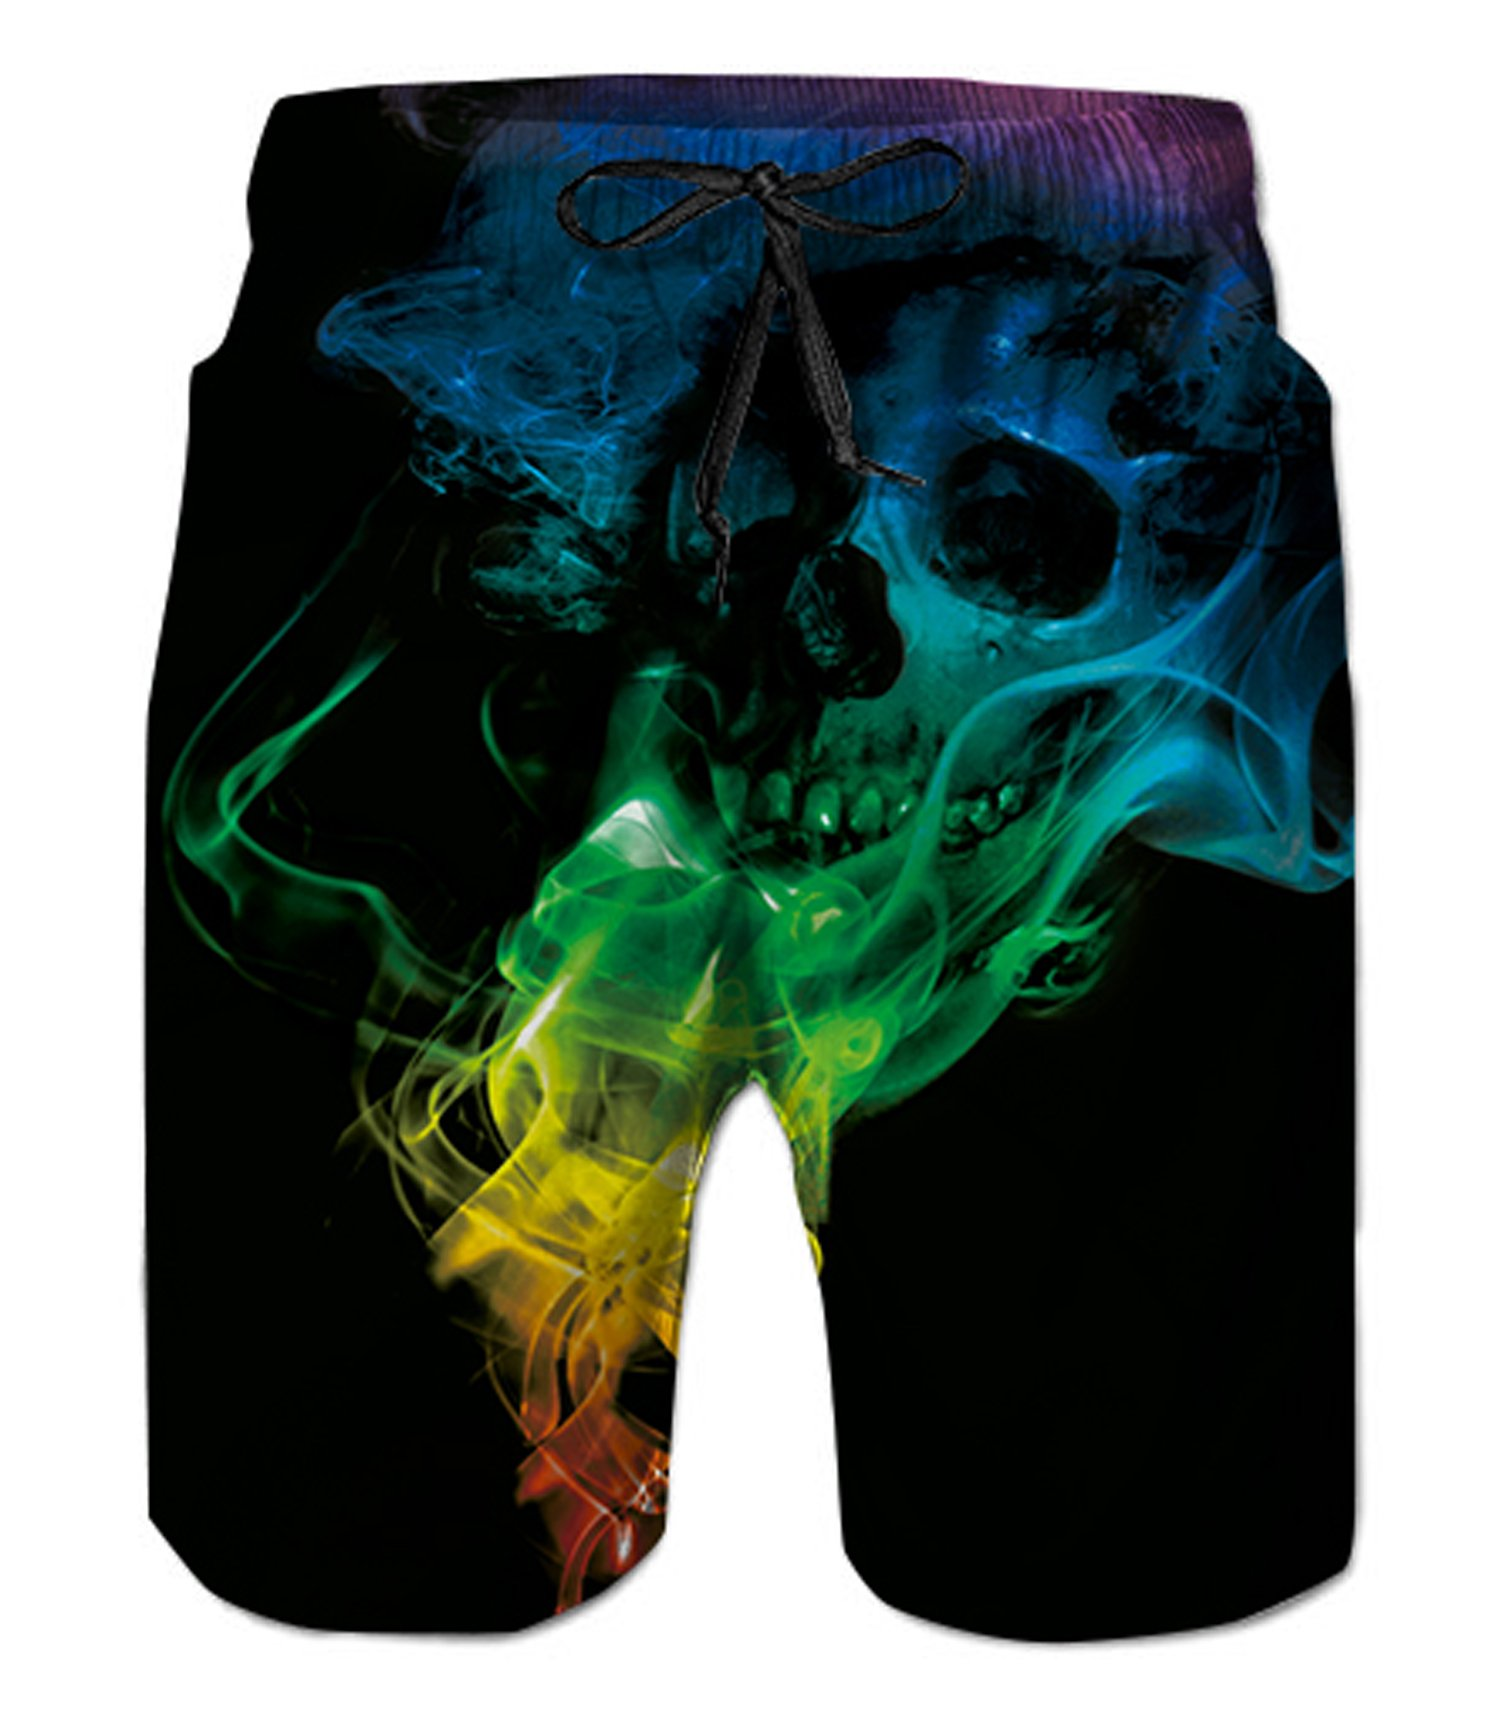 Belovecol Men's Swim Shorts 3D Print Smoke Skull Bathing Suits Summer Board Shorts Black M by Belovecol